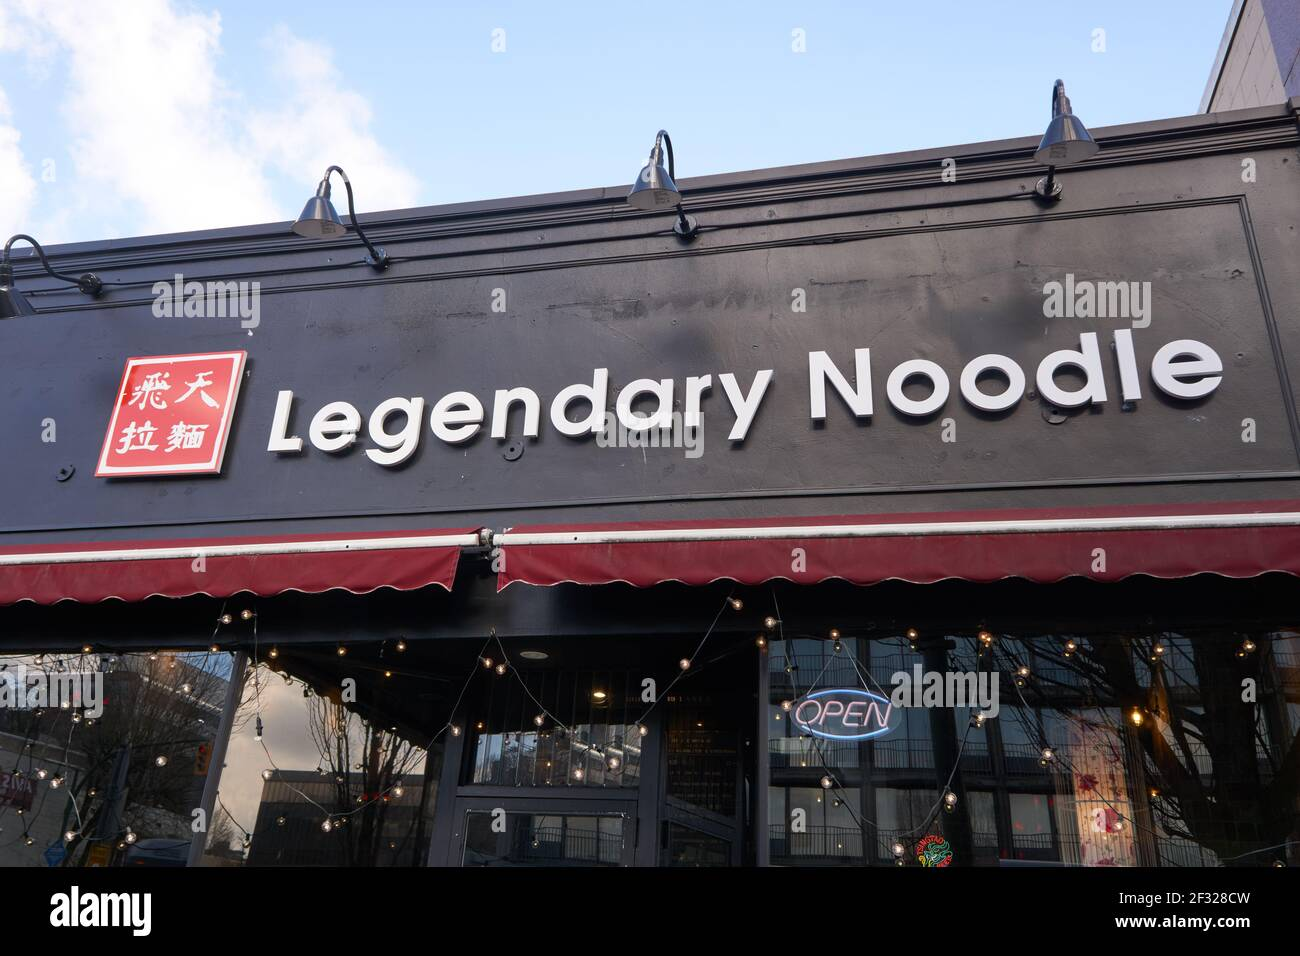 legendary-noodle-chinese-restaurant-sign